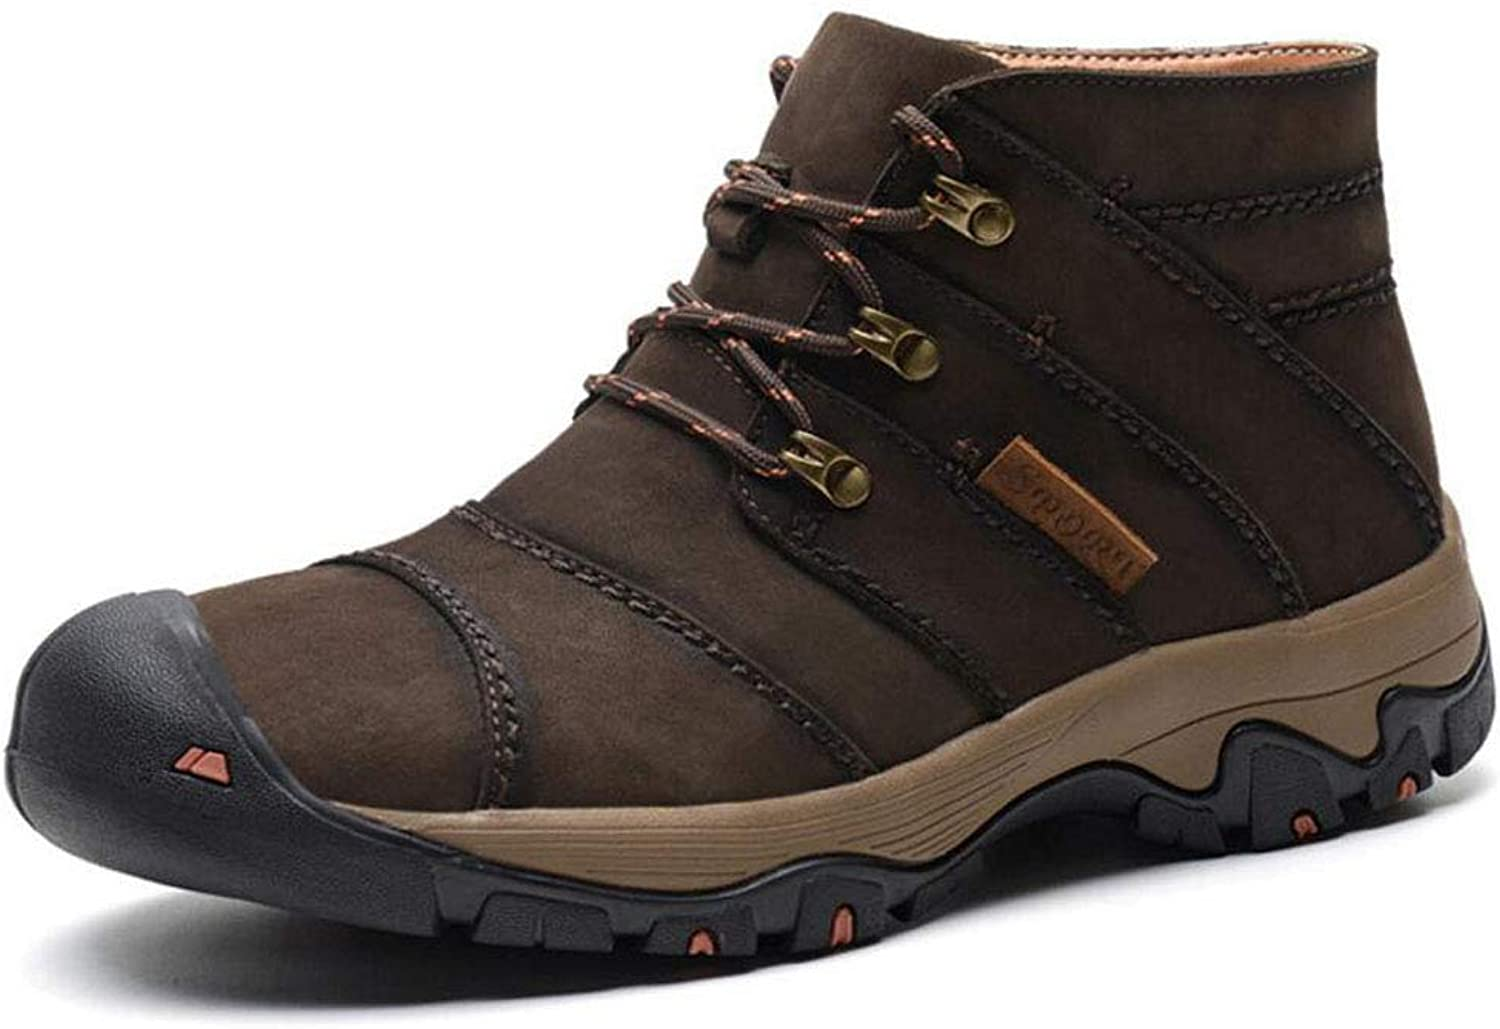 Men's Hiker Leather Waterproof Hiking Boot Outdoor Backpacking shoes Large Size For All Seasons